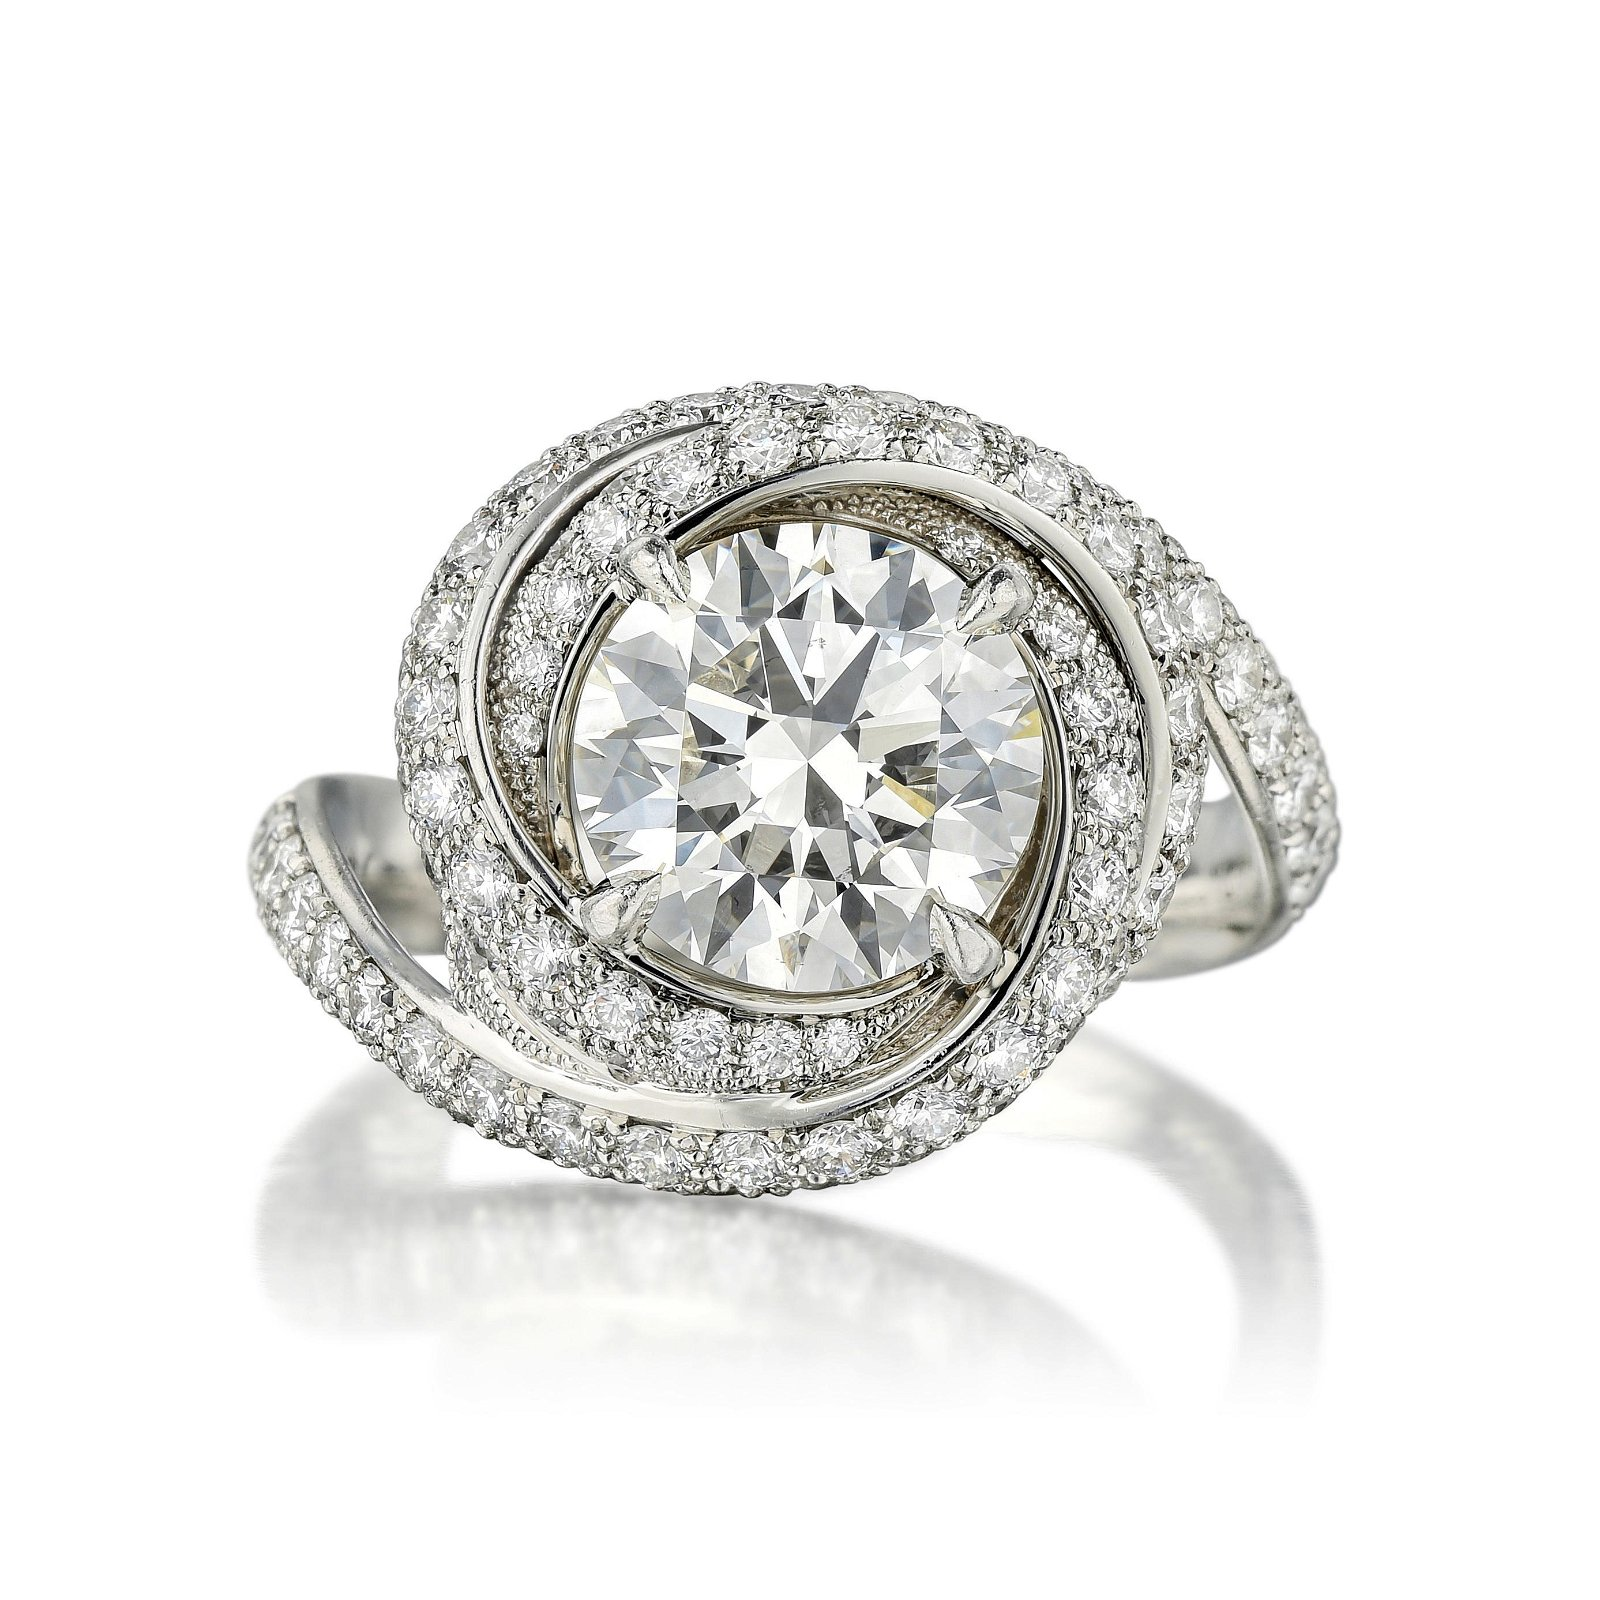 Cartier Trinity Ruban 2.16-Carat Diamond Ring